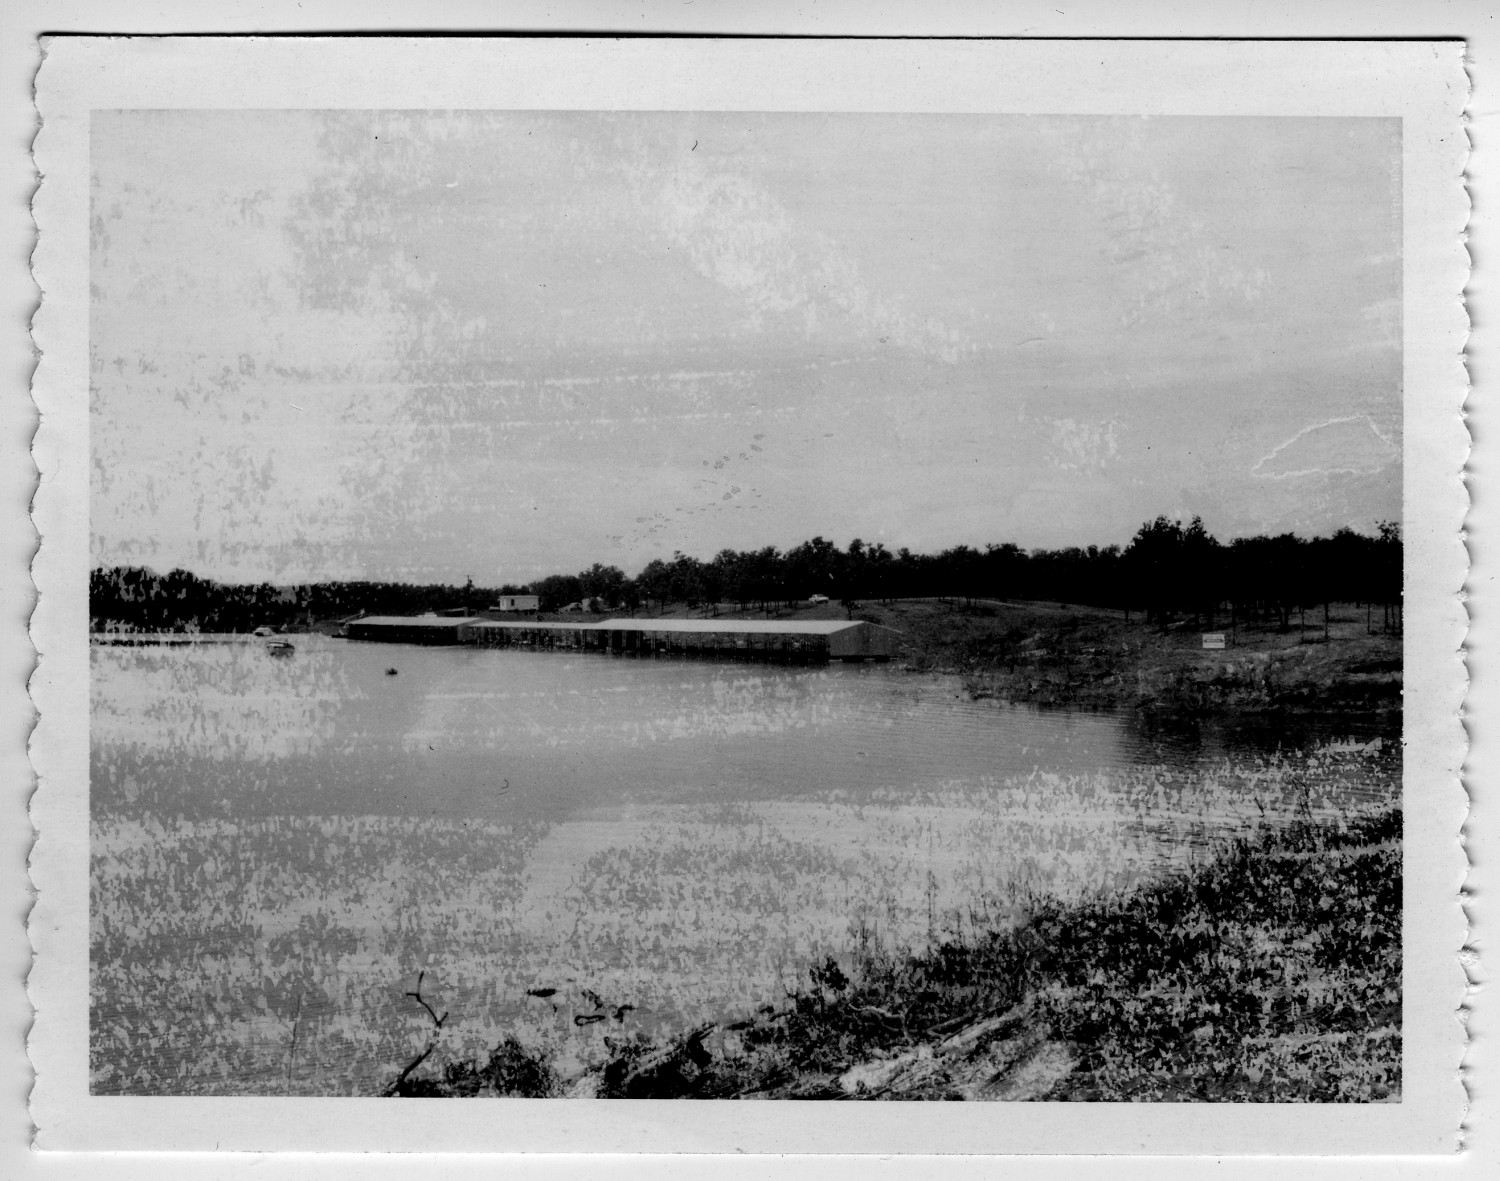 [Photograph of Hickory Creek], Photograph of Hickory Creek. The water curves in a half circle from the left side of the image and the creek moves out of the frame to the bottom-right.,